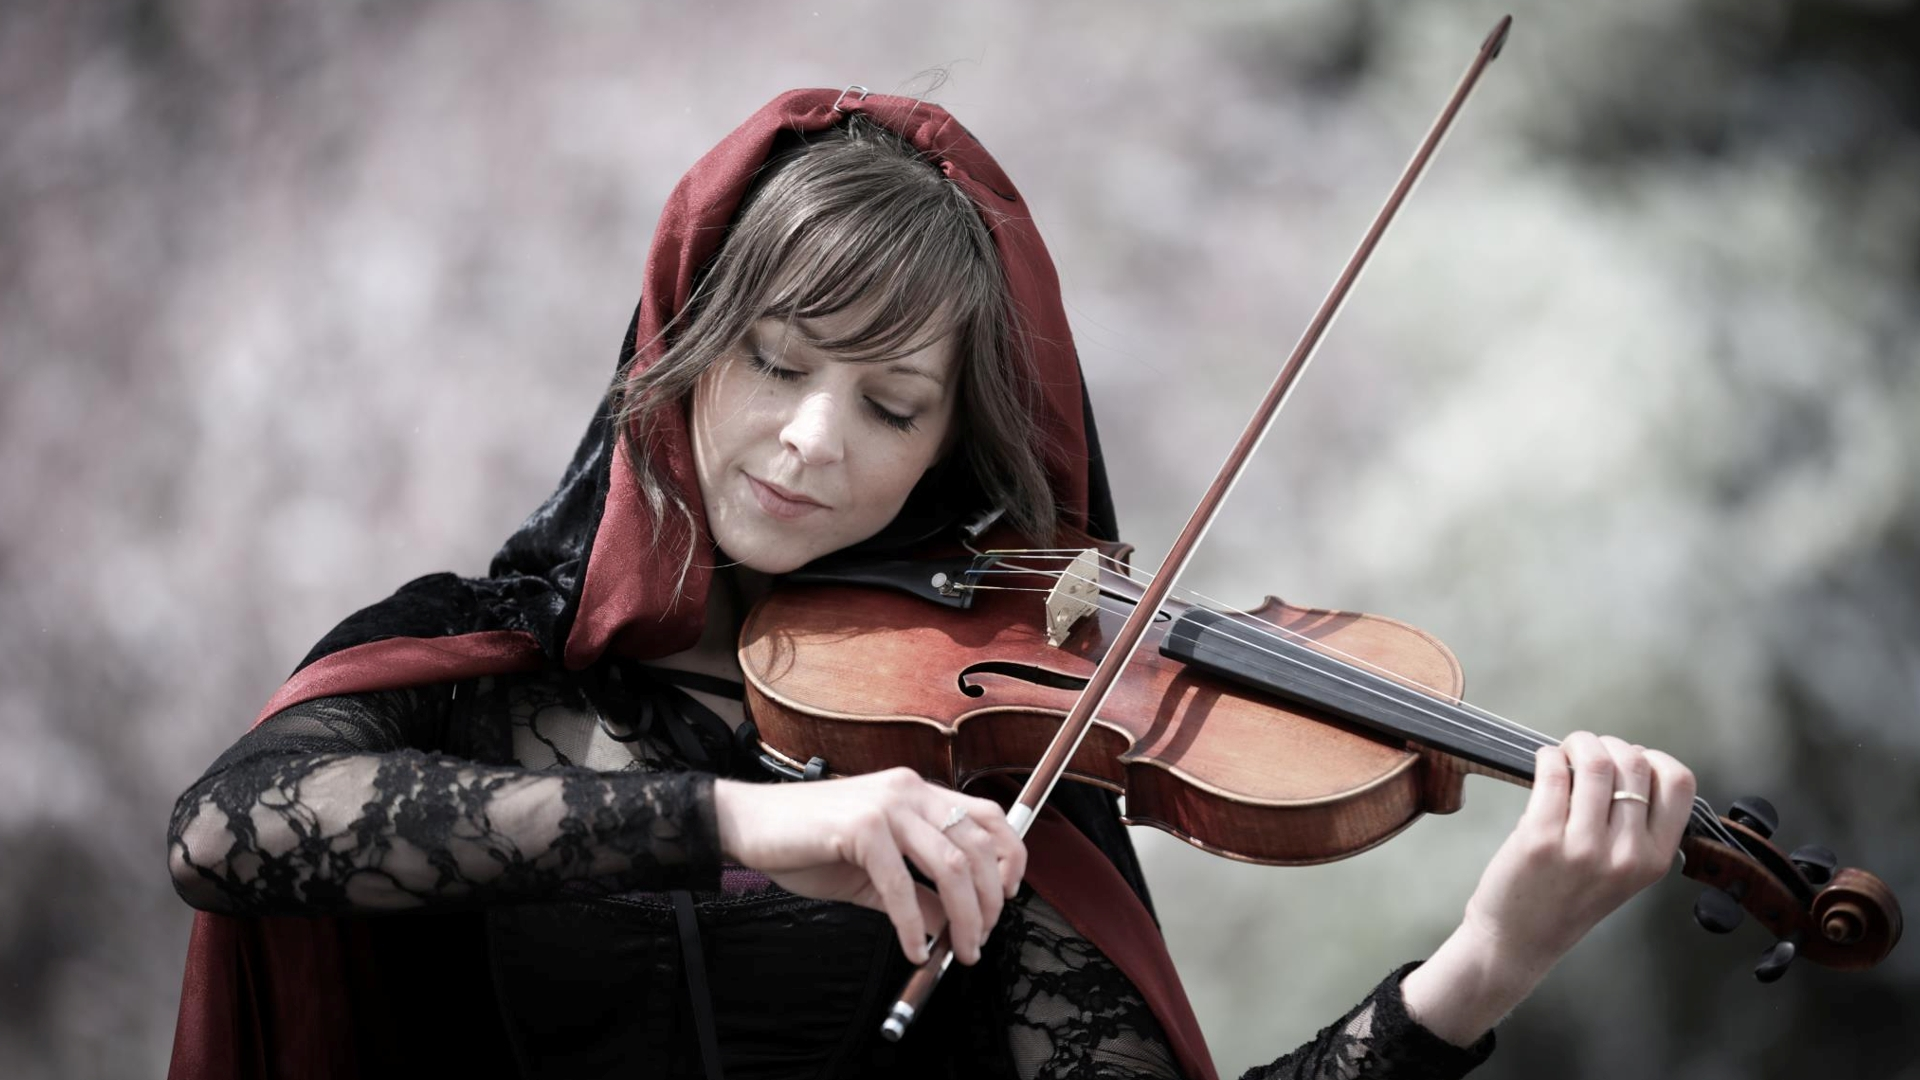 Lindsey Stirling Wallpapers Images Photos Pictures Backgrounds 1920x1080